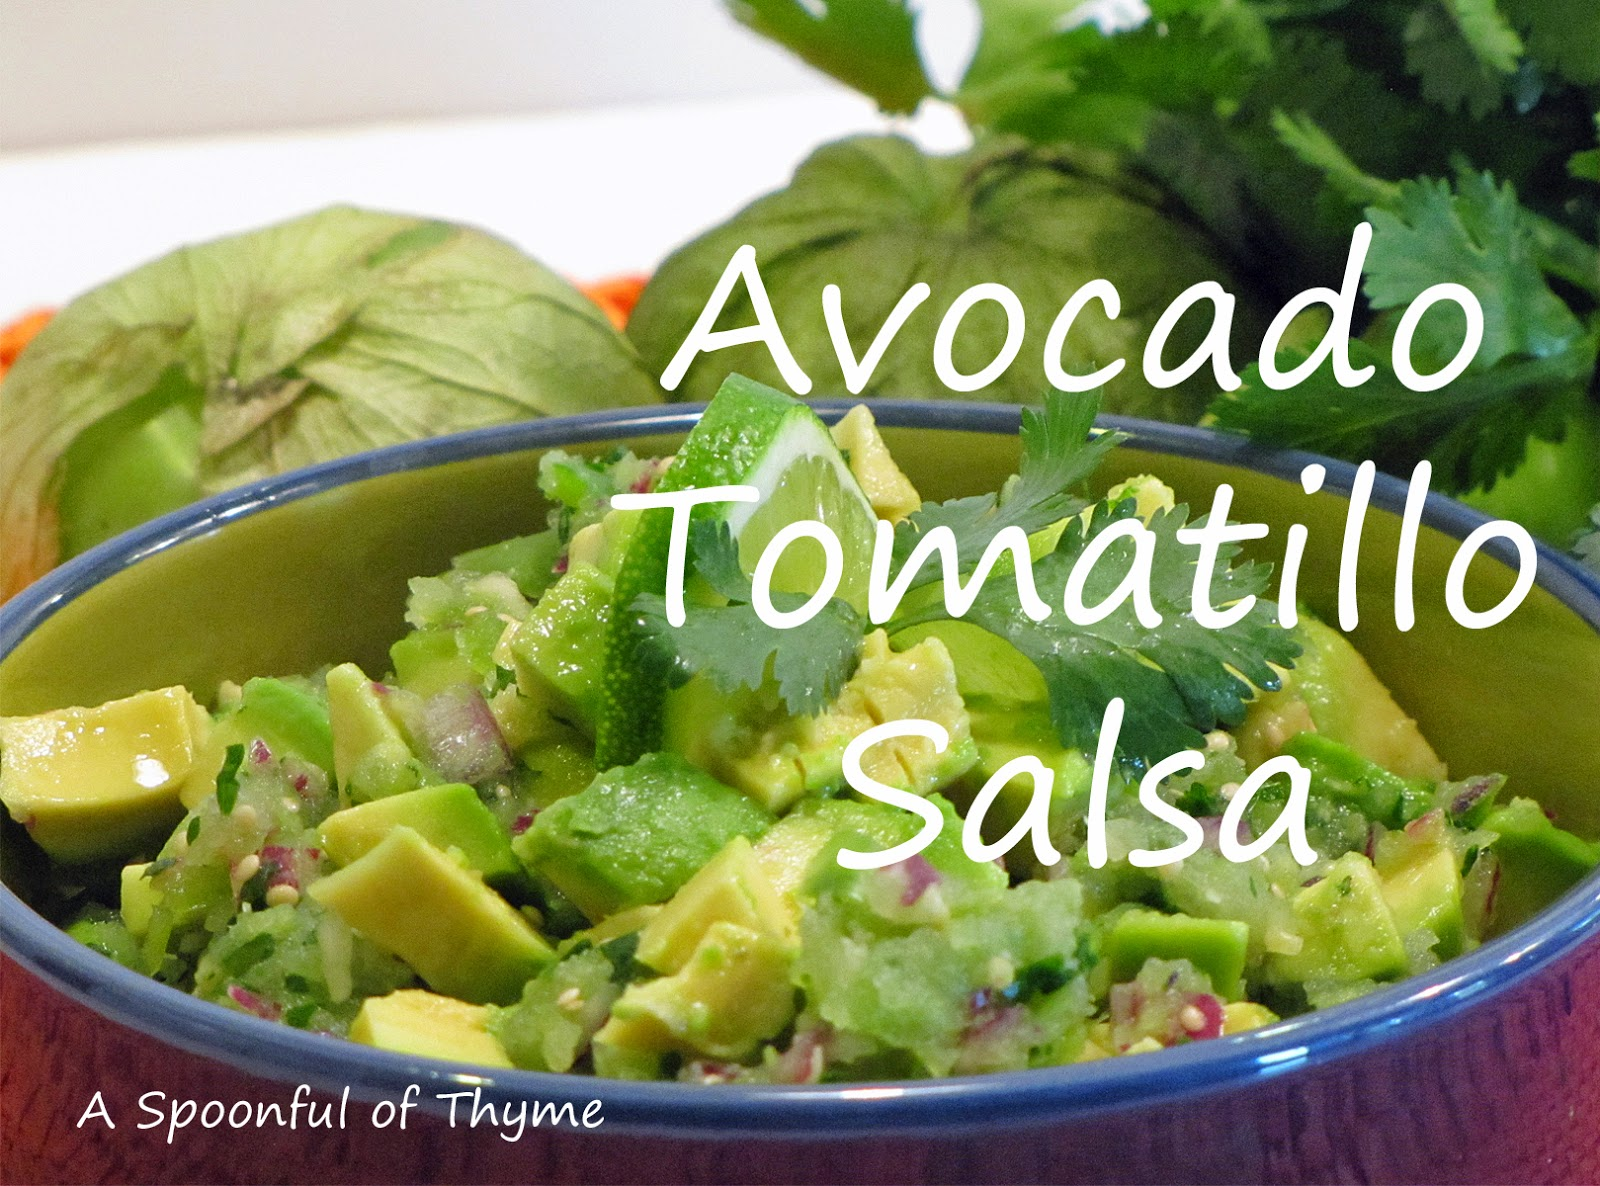 ... avocado salsa grilled pork chops with tomatillo corn and avocado salsa